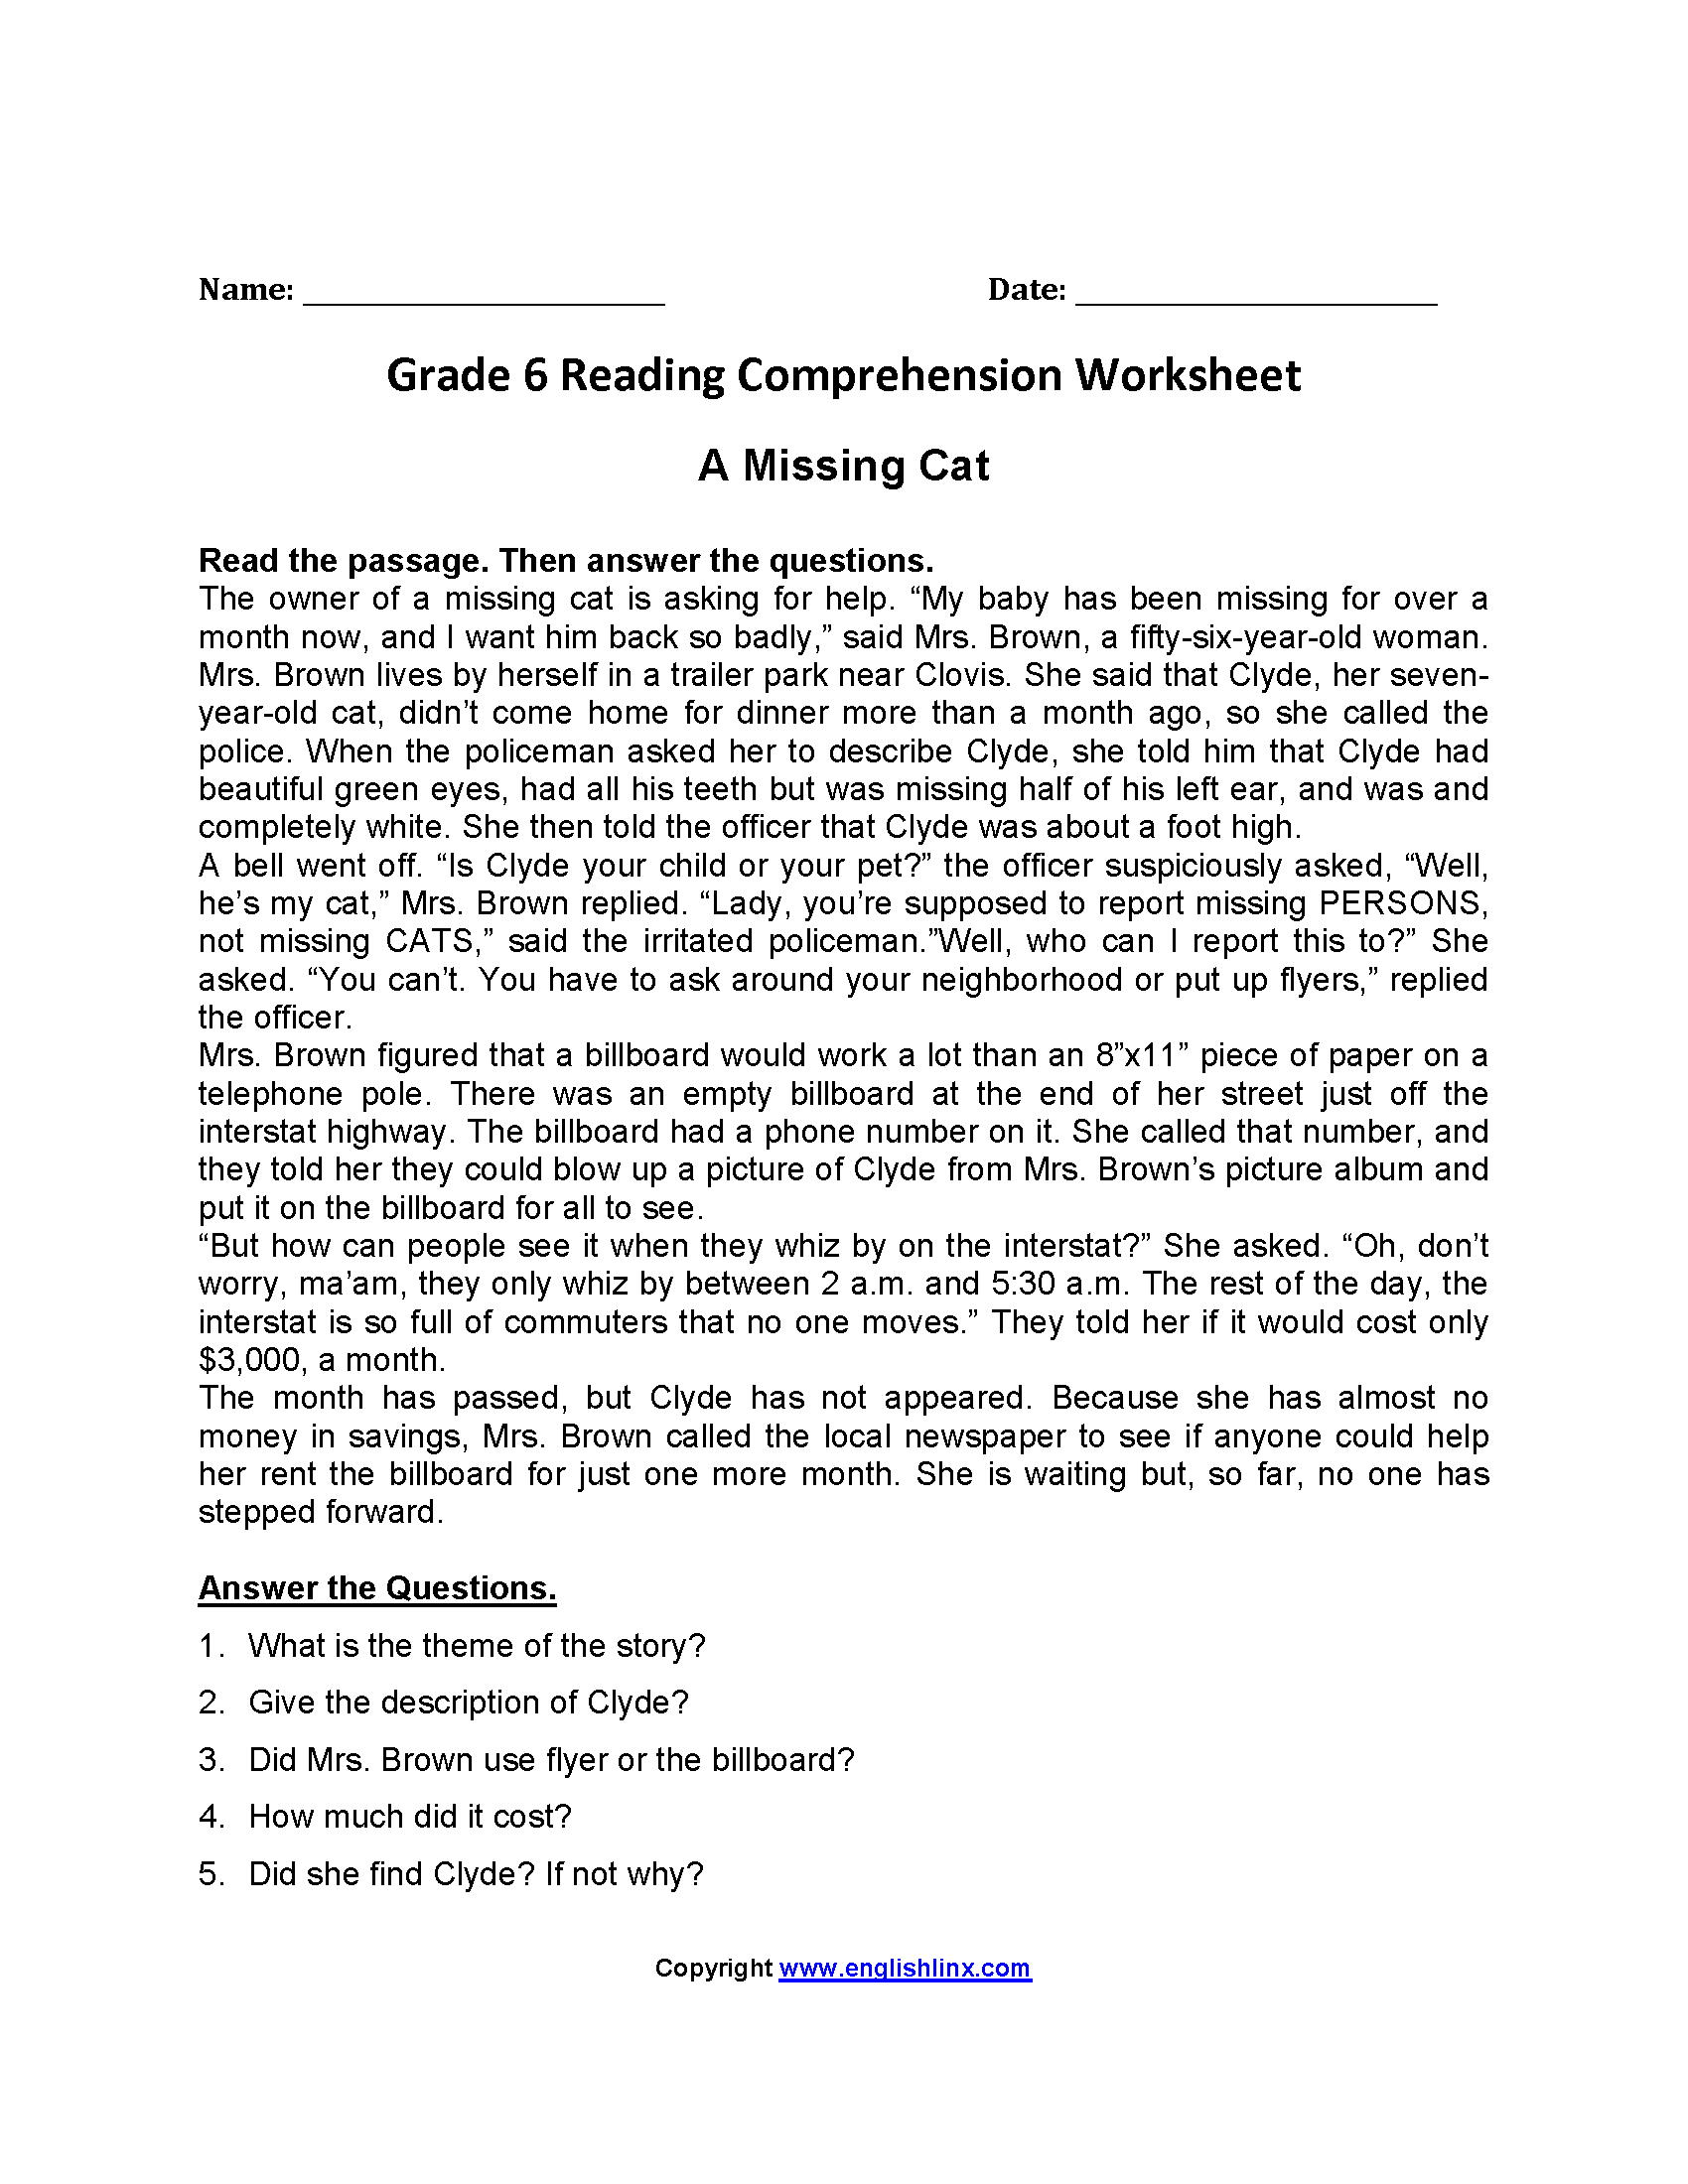 A Missing Cat Sixth Grade Reading Worksheets